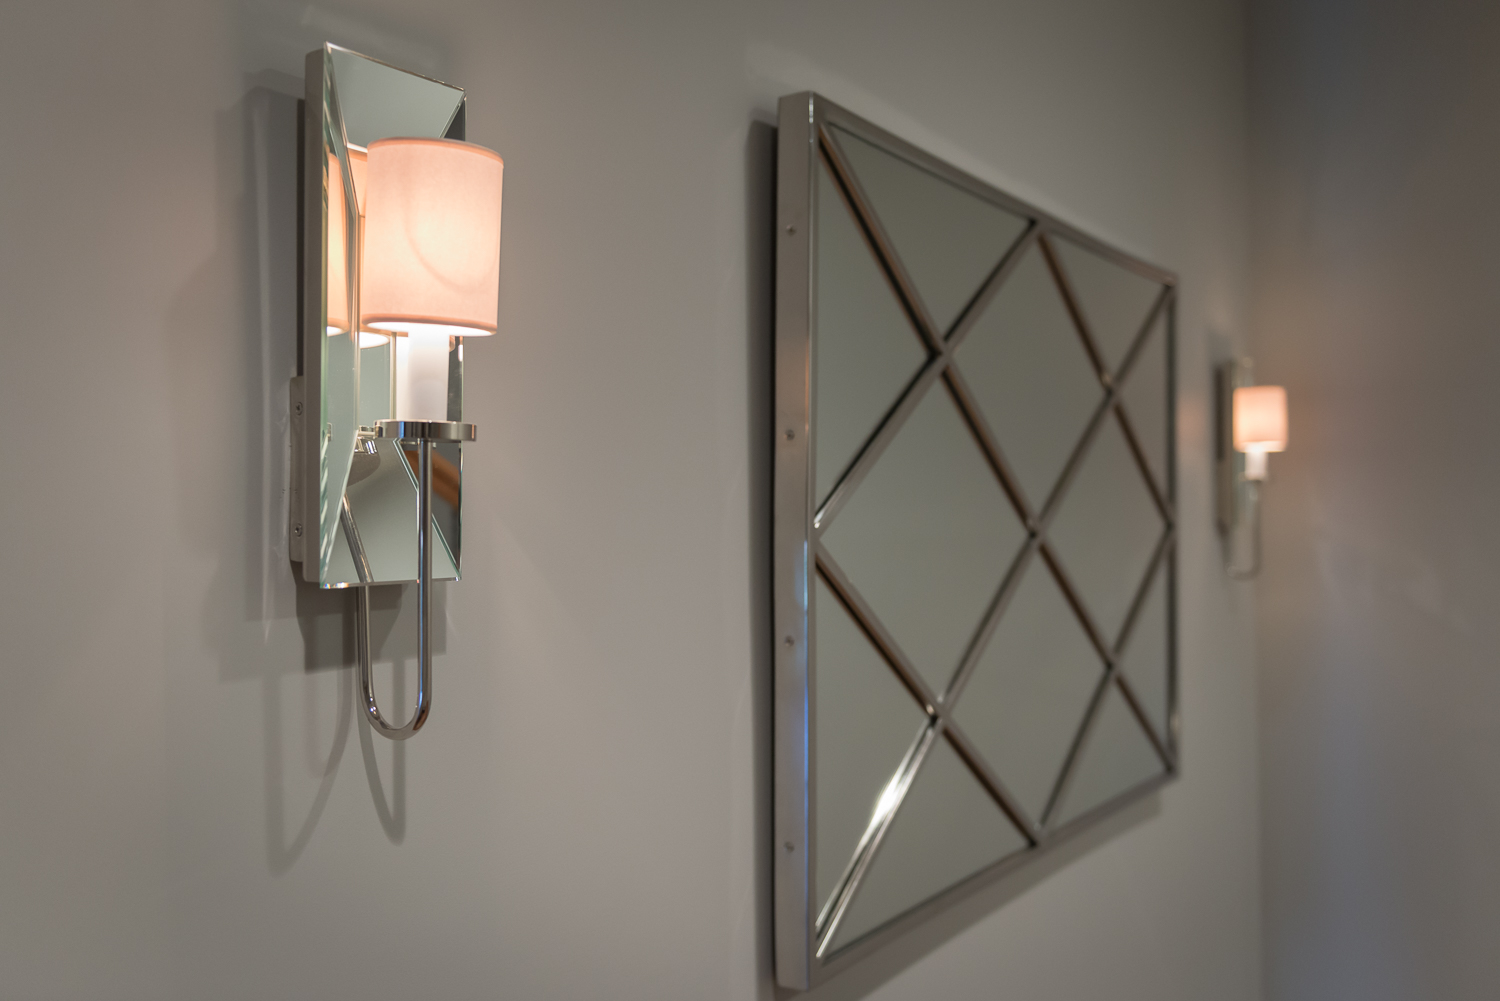 Sconces and mirror add some sparkle to the hallway into the basement. www.saranobledesigns.com